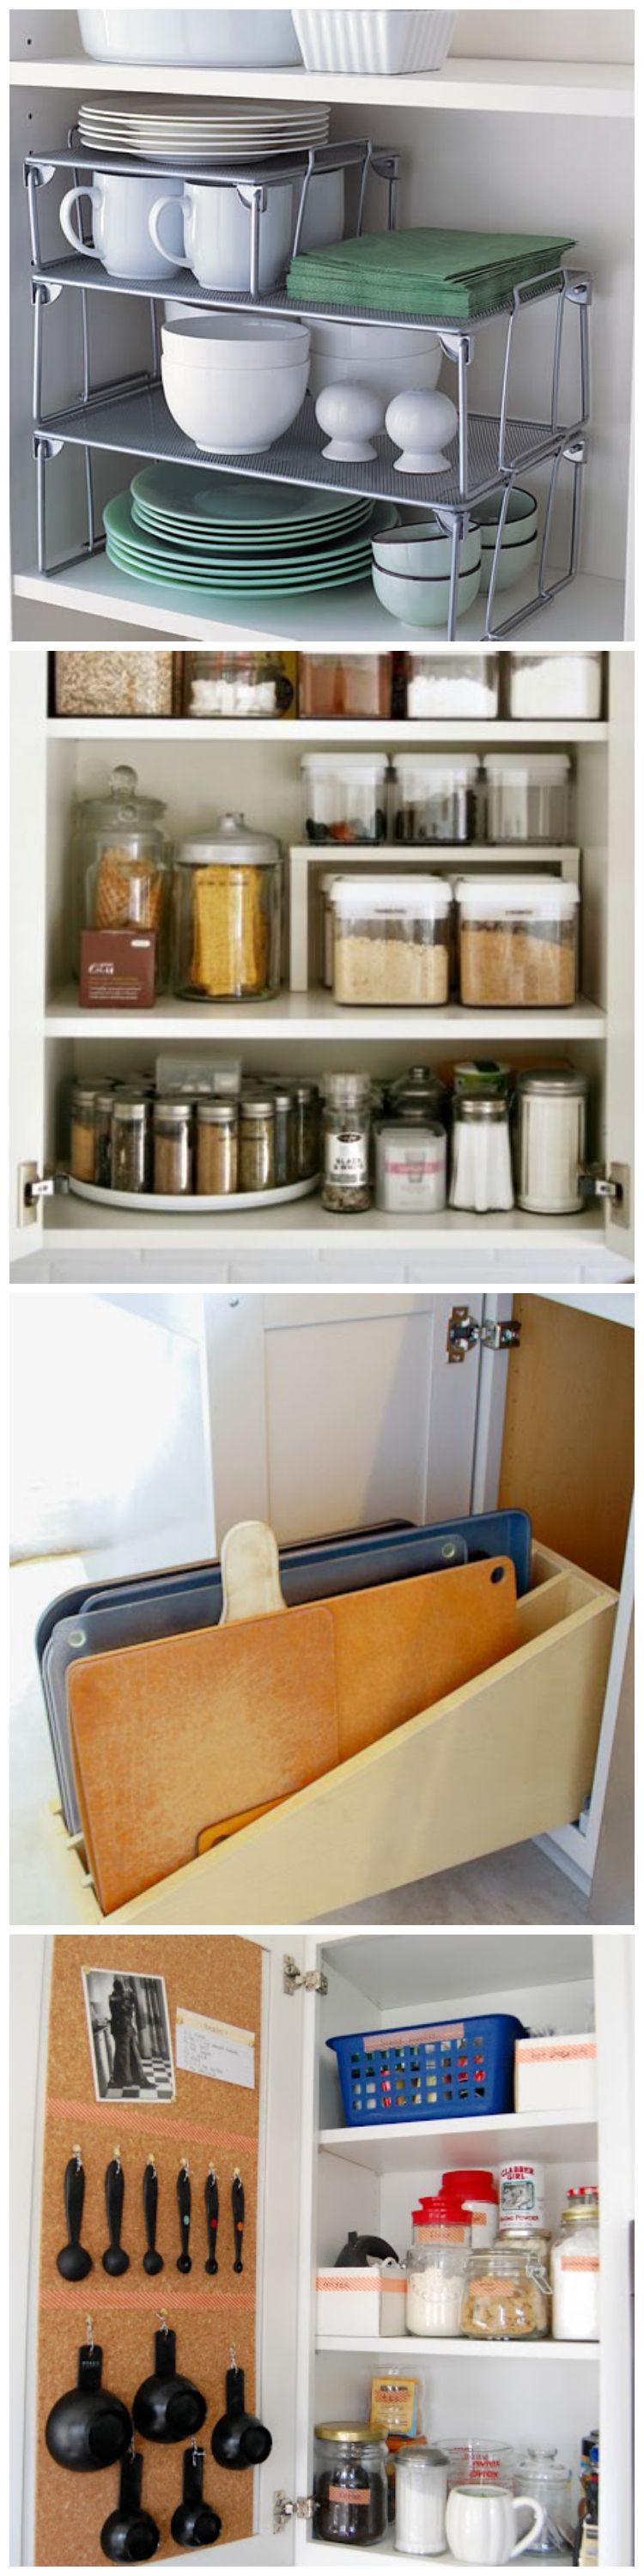 the organizers lowes cabinets ideas organized corner with organization in newly how organizing cabinet shelving pantry storage cupboard to my food inepensive cloth organize clean bins kitchen new love endearing